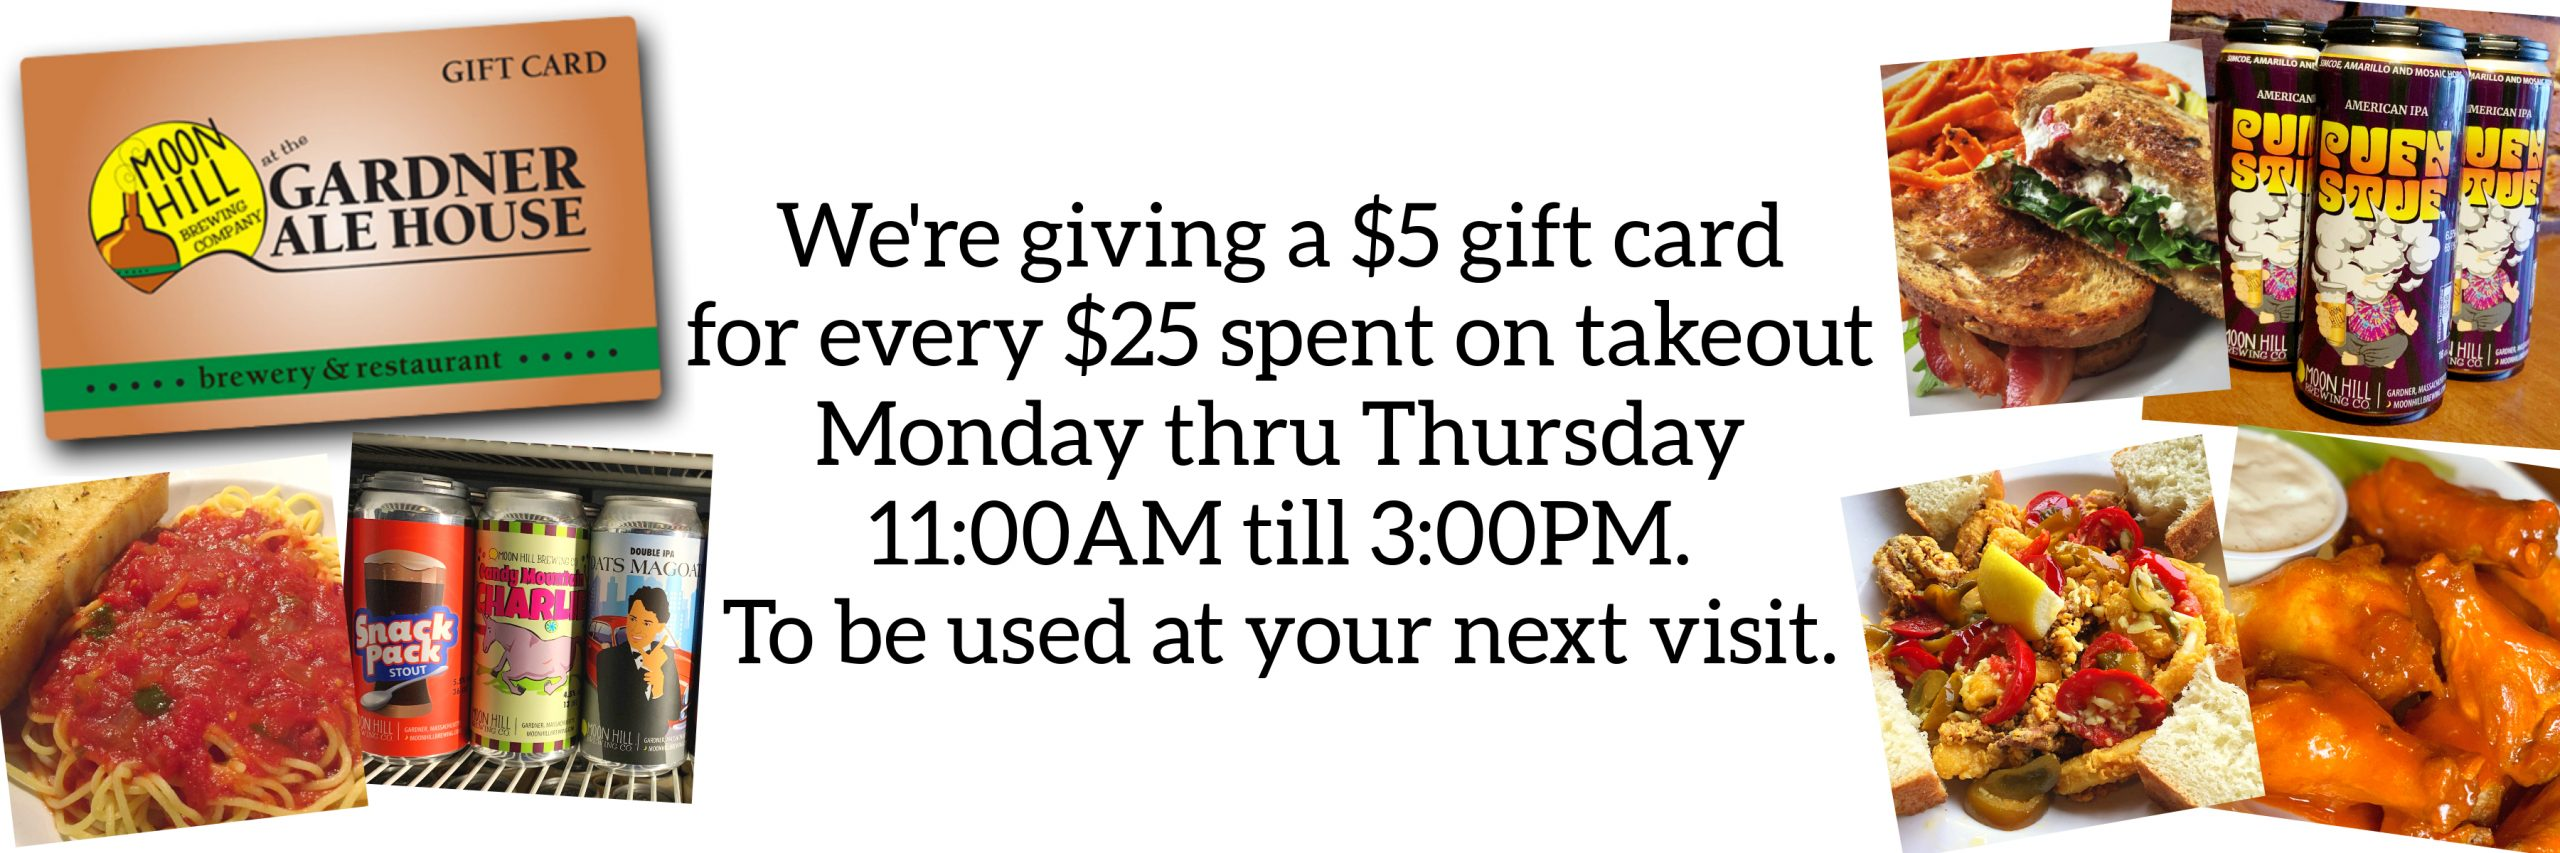 Spend $25 Get a $5 Gift Card